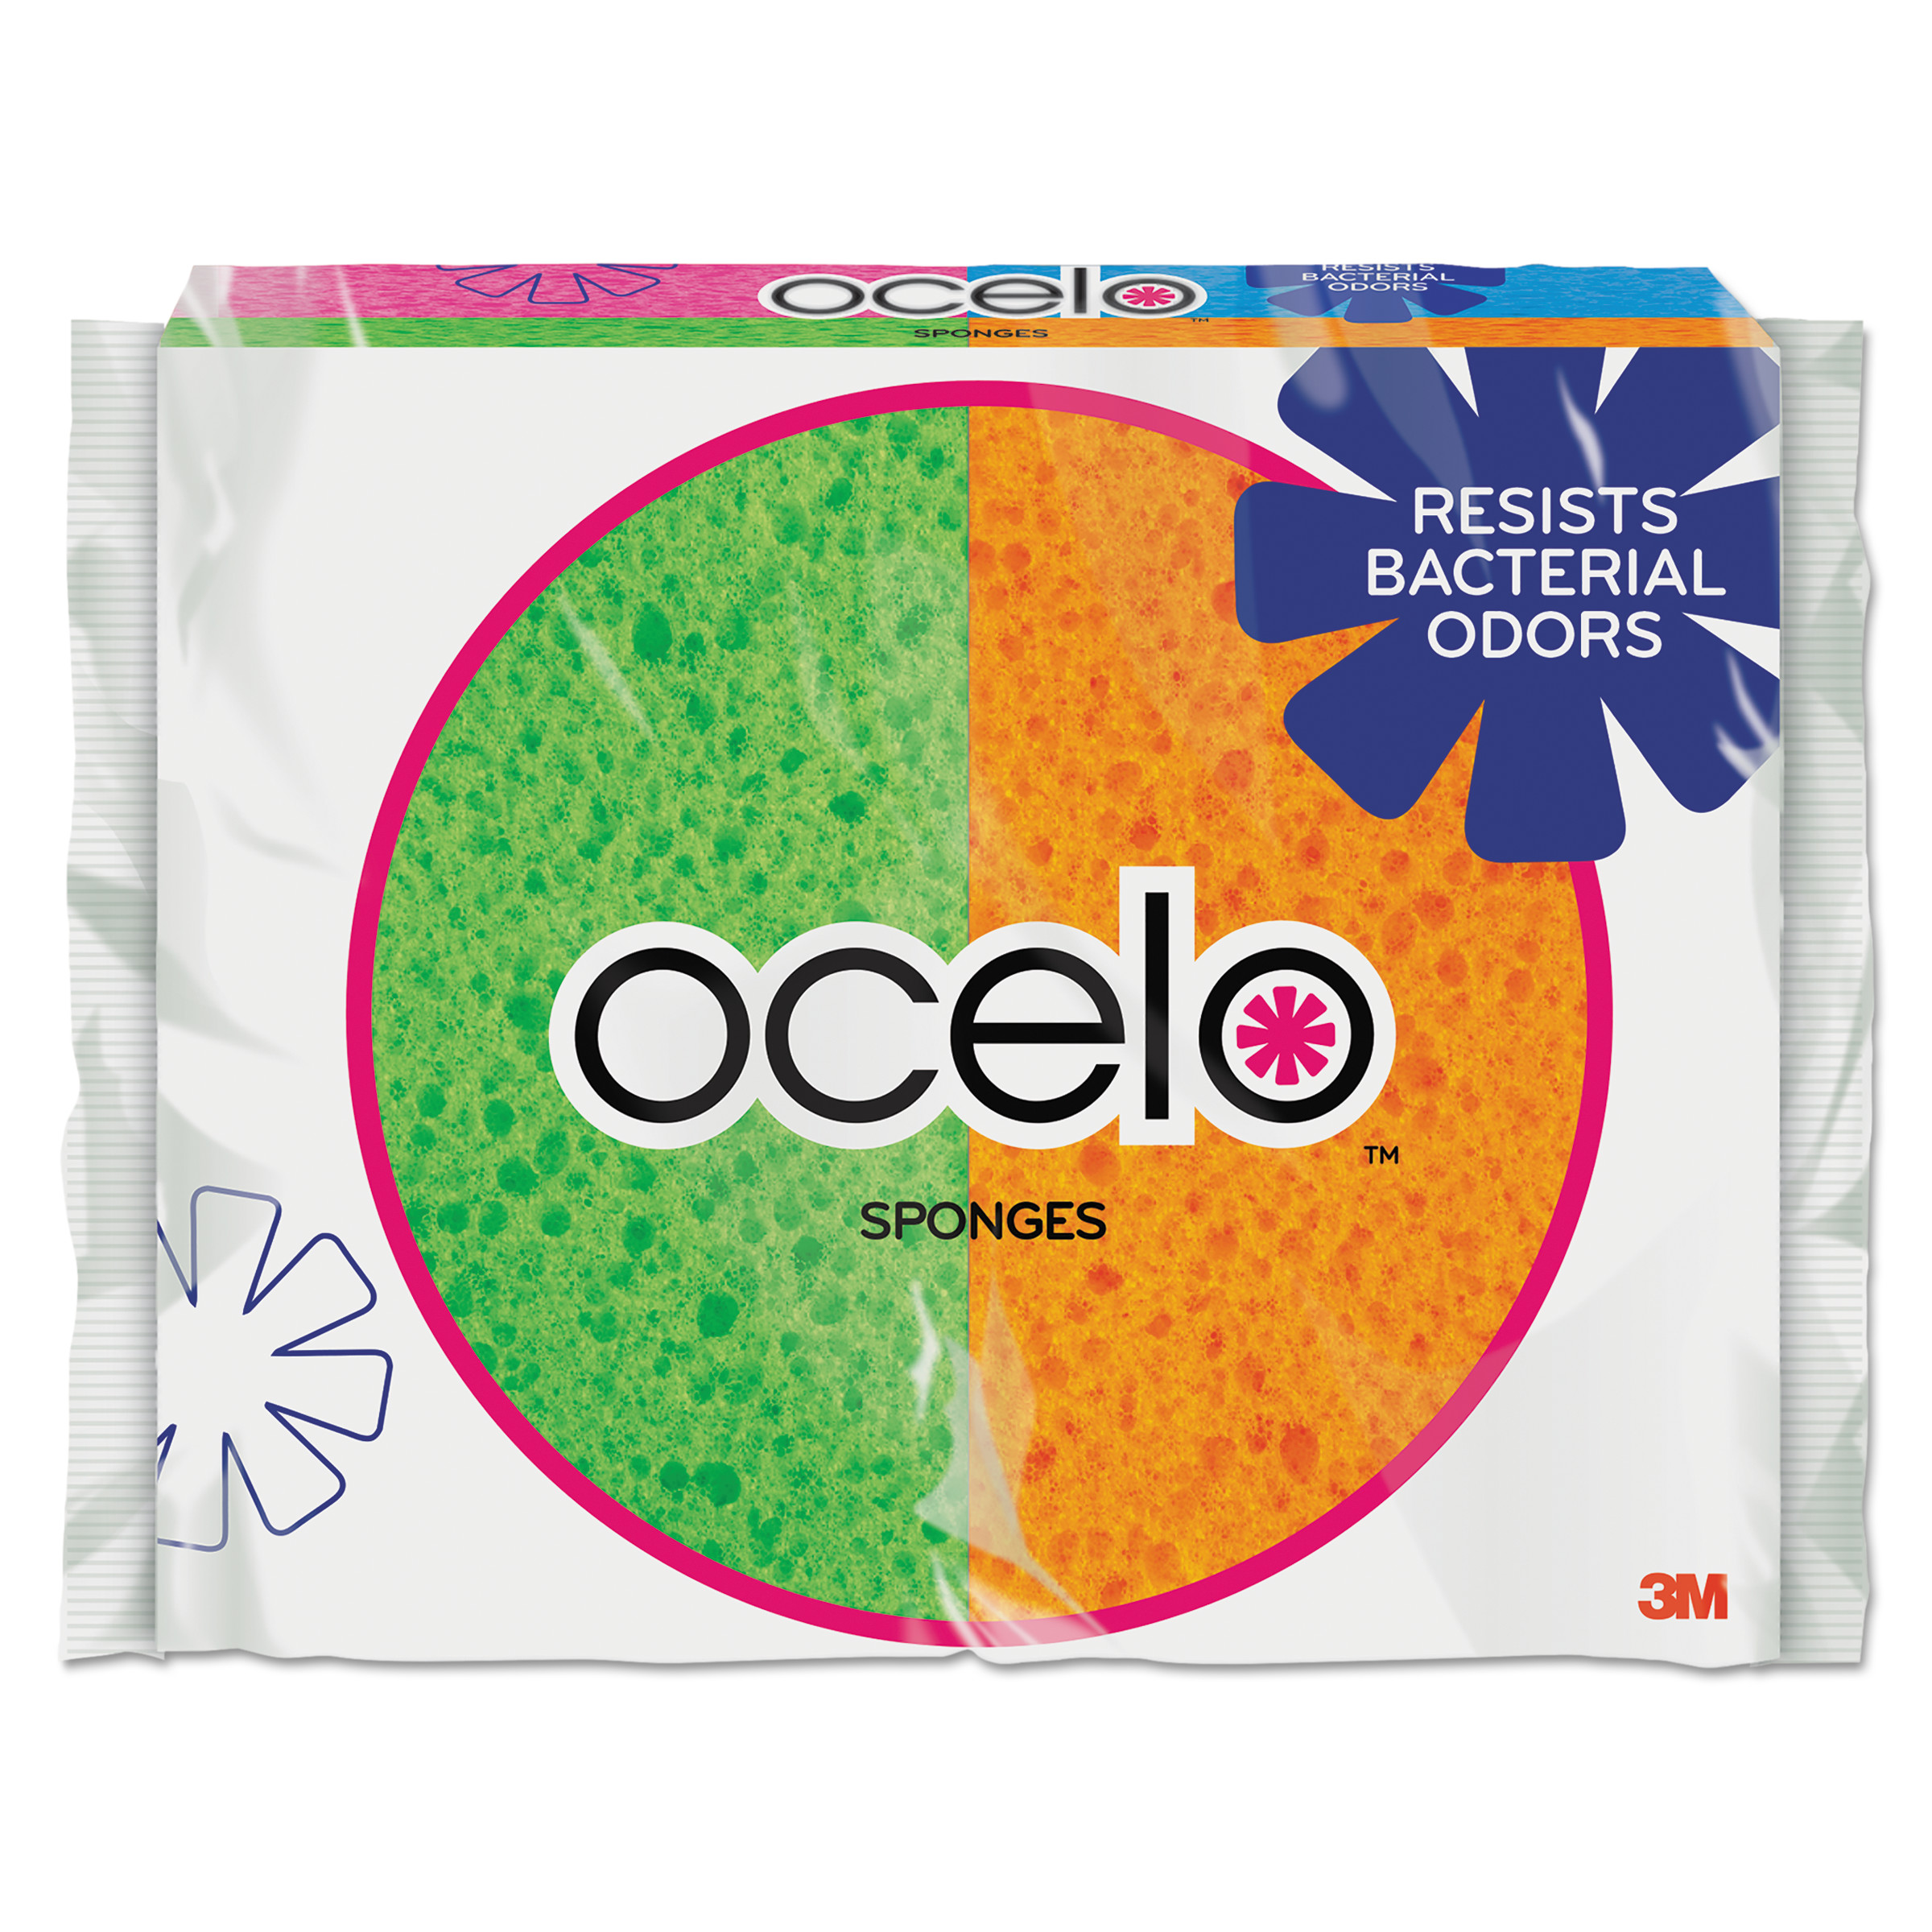 O-Cel-O Sponge With Stayfresh Technology, 4 7/10 x 3 x 3/5, 4-pack